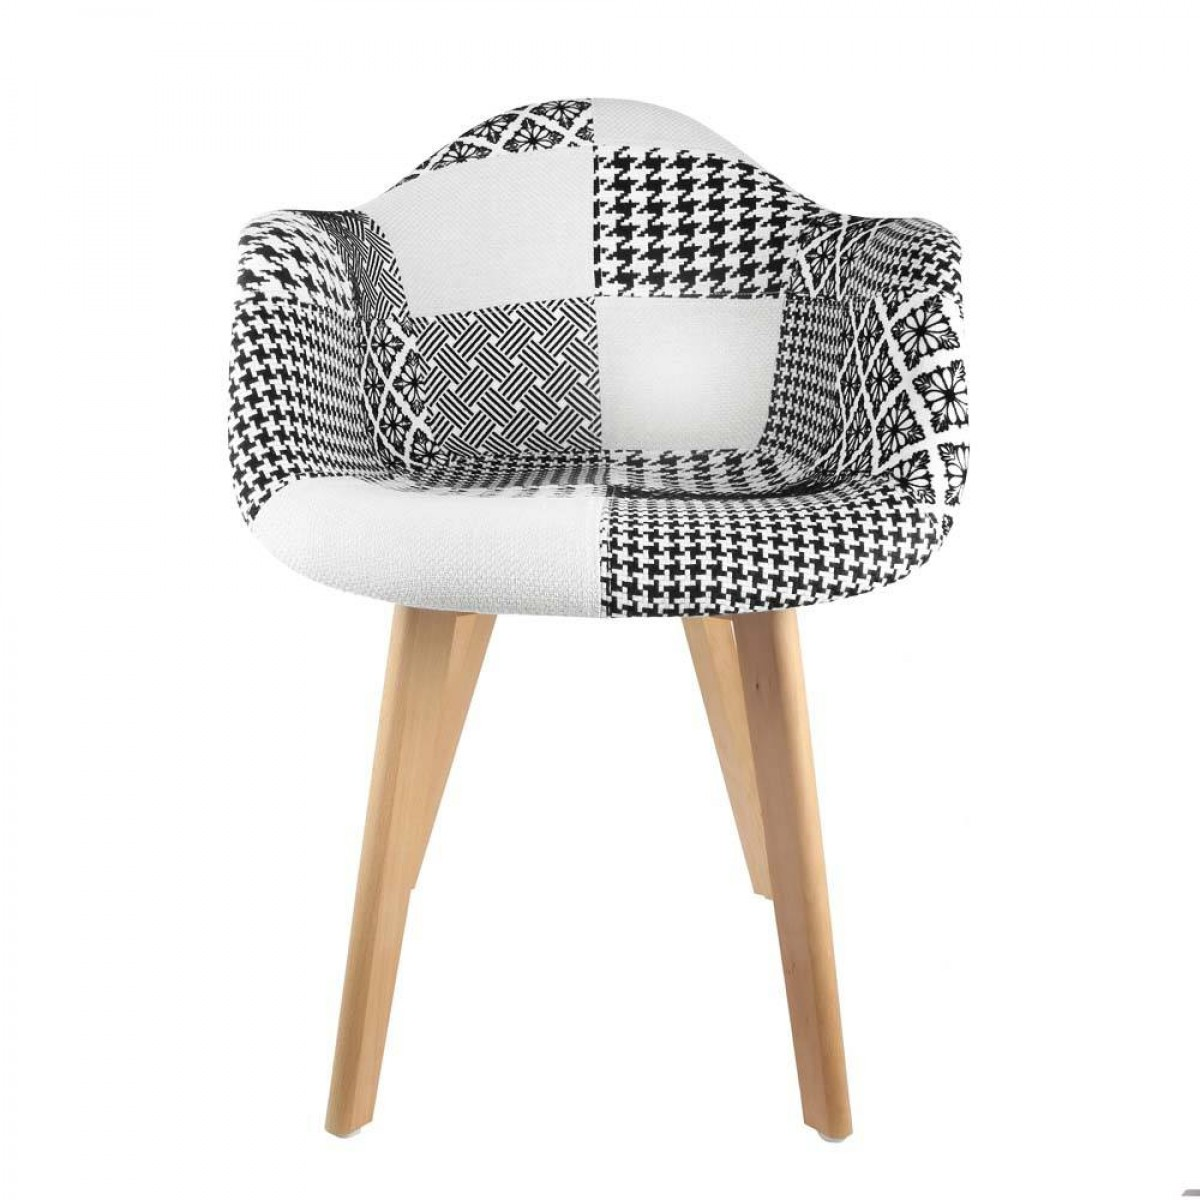 fauteuil scandinave patchwork noir blanc les douces nuits de ma linge de maison. Black Bedroom Furniture Sets. Home Design Ideas